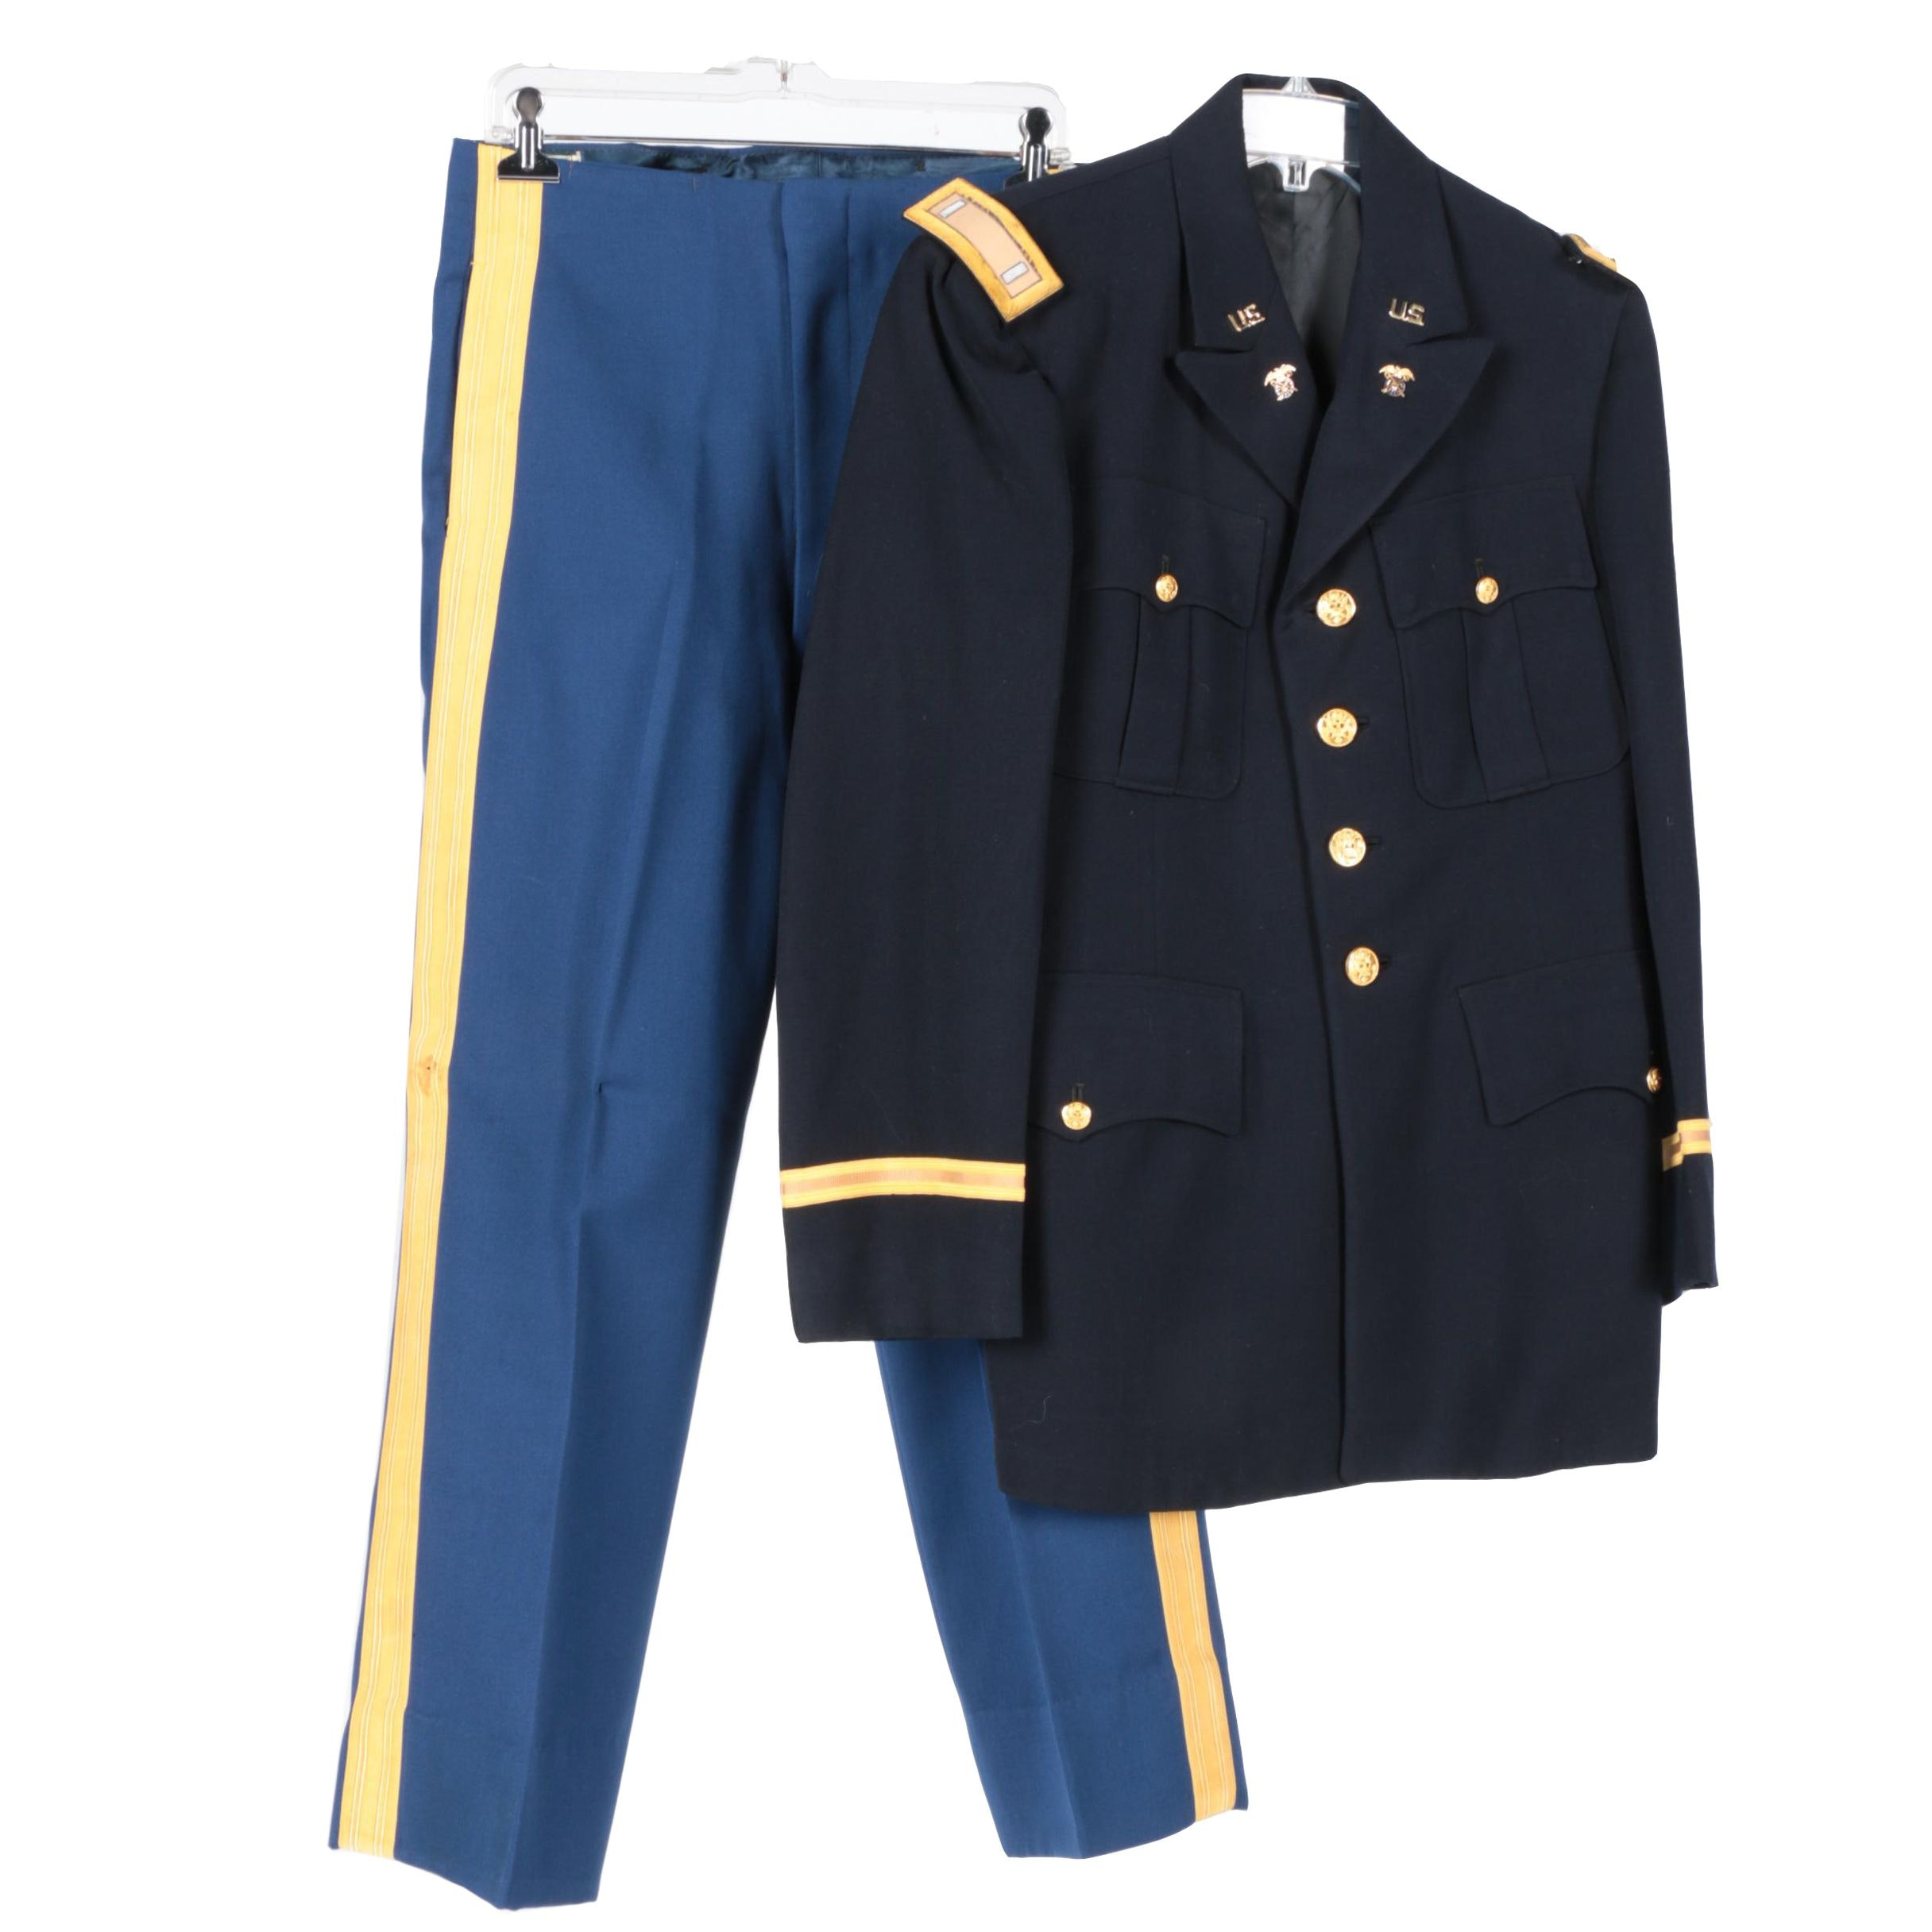 U.S. Army Quartermaster Uniform